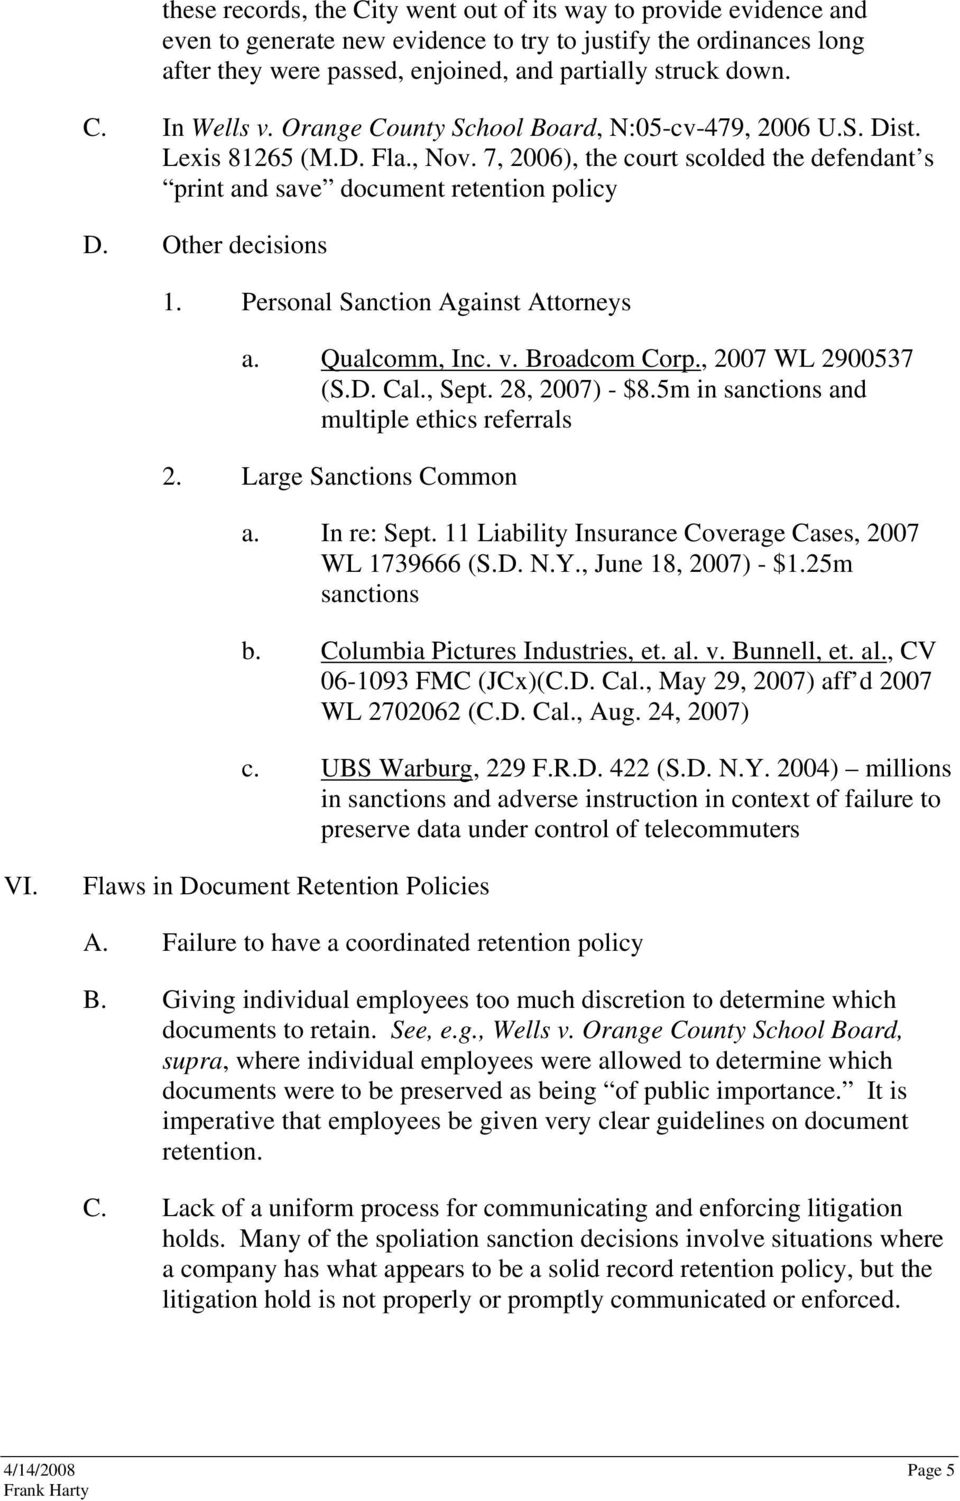 Personal Sanction Against Attorneys a. Qualcomm, Inc. v. Broadcom Corp., 2007 WL 2900537 (S.D. Cal., Sept. 28, 2007) - $8.5m in sanctions and multiple ethics referrals 2. Large Sanctions Common a.